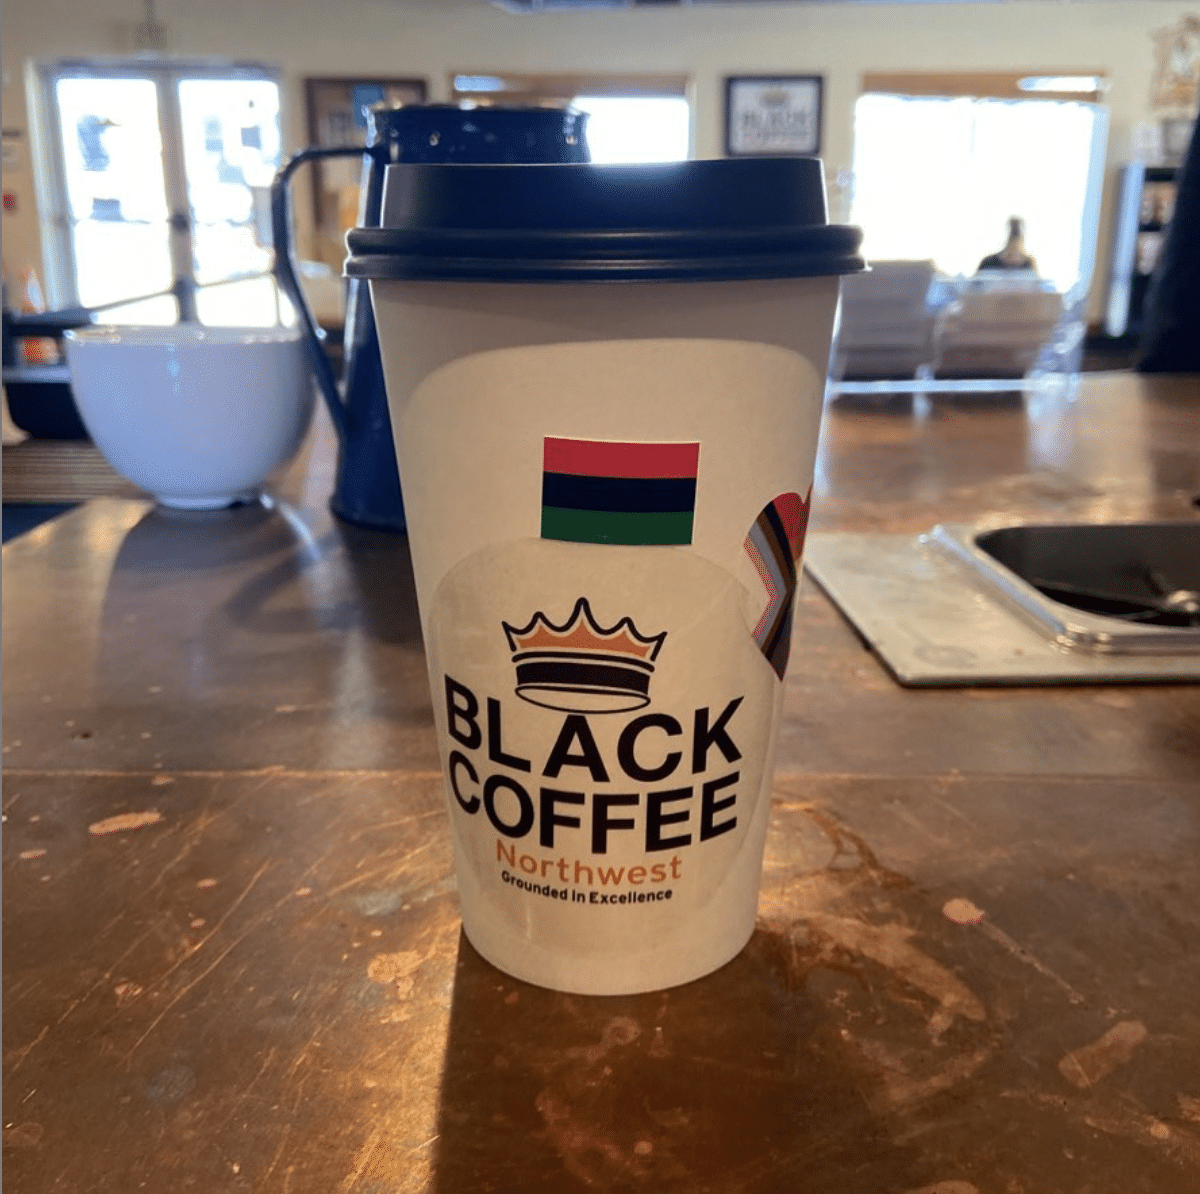 Coffee cup from Black Coffee Northwest